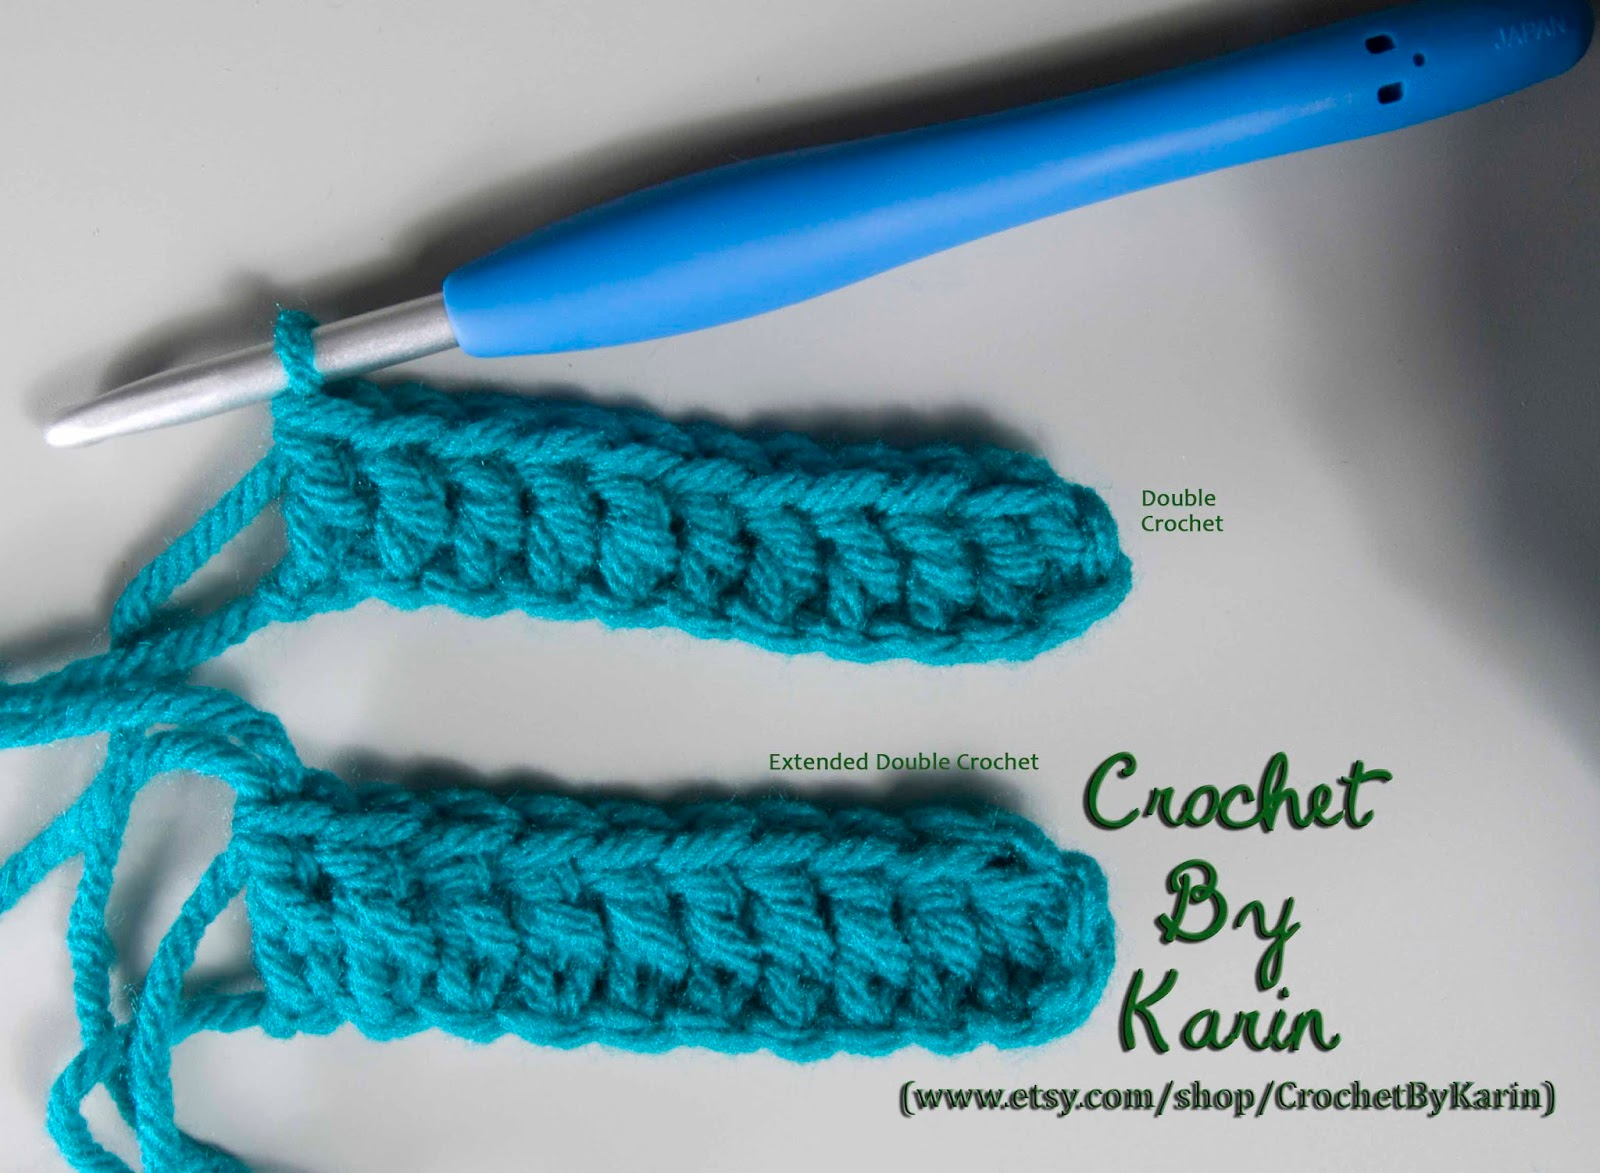 Crochet Stitch Edc : single crochet at the bottom of each extended double crochet stitch ...